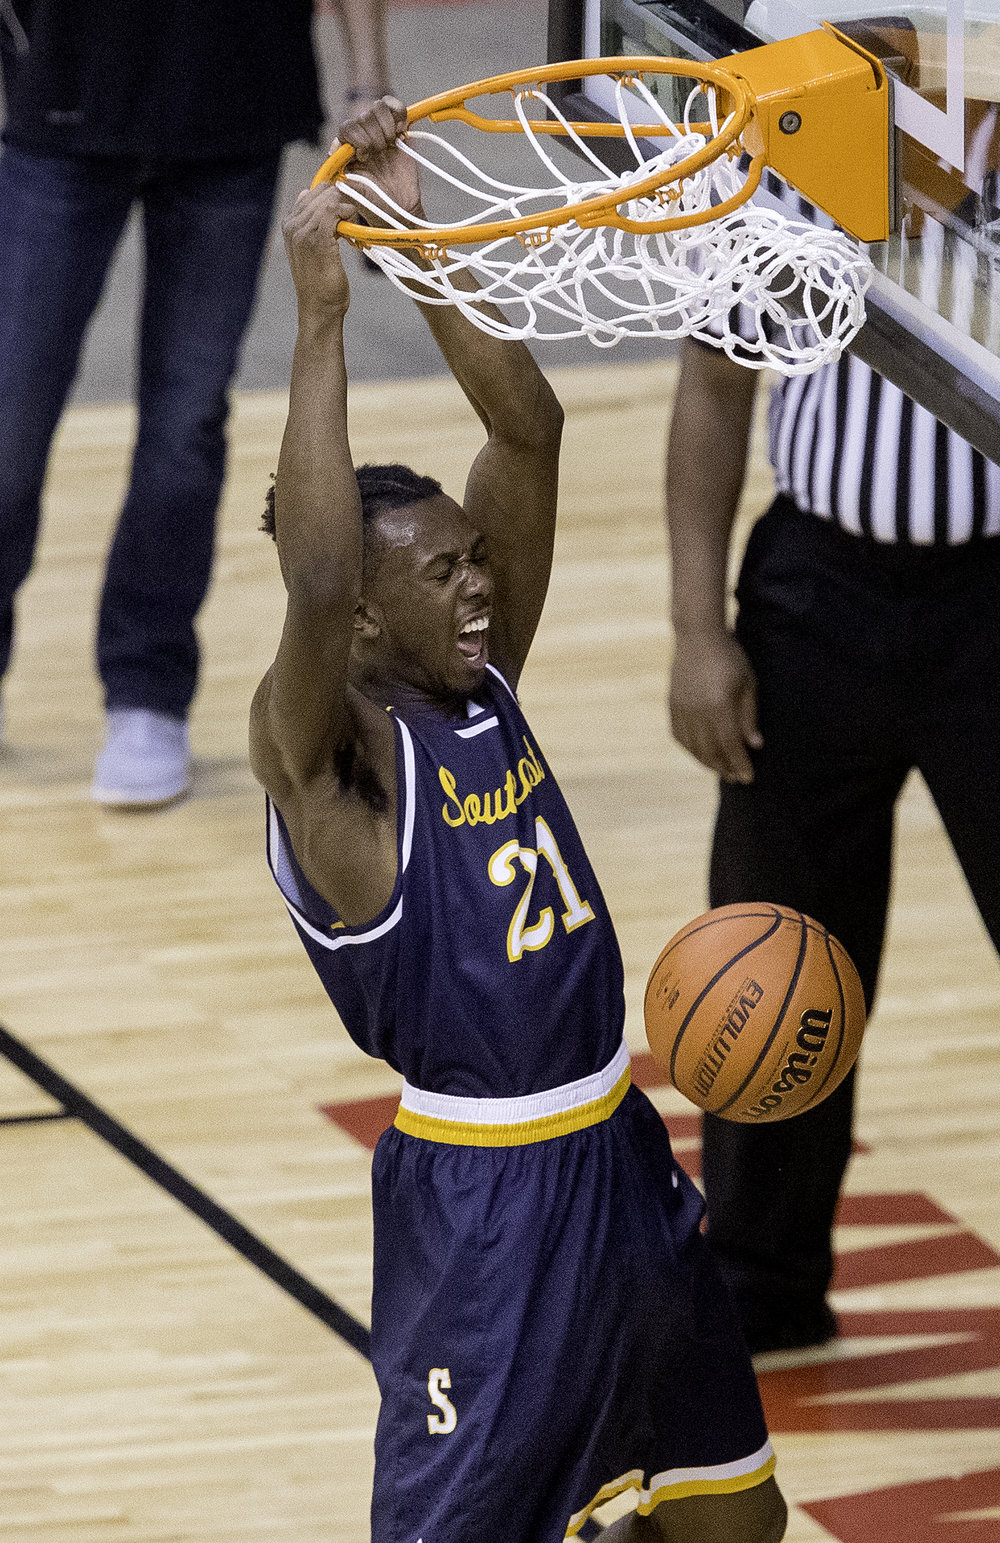 Southeast's Anthony Fairlee slams home two points against Springfield in the first half during the Boys City Tournament at the Bank of Springfield Center Friday, Jan. 19, 2018. [Ted Schurter/The State Journal-Register]